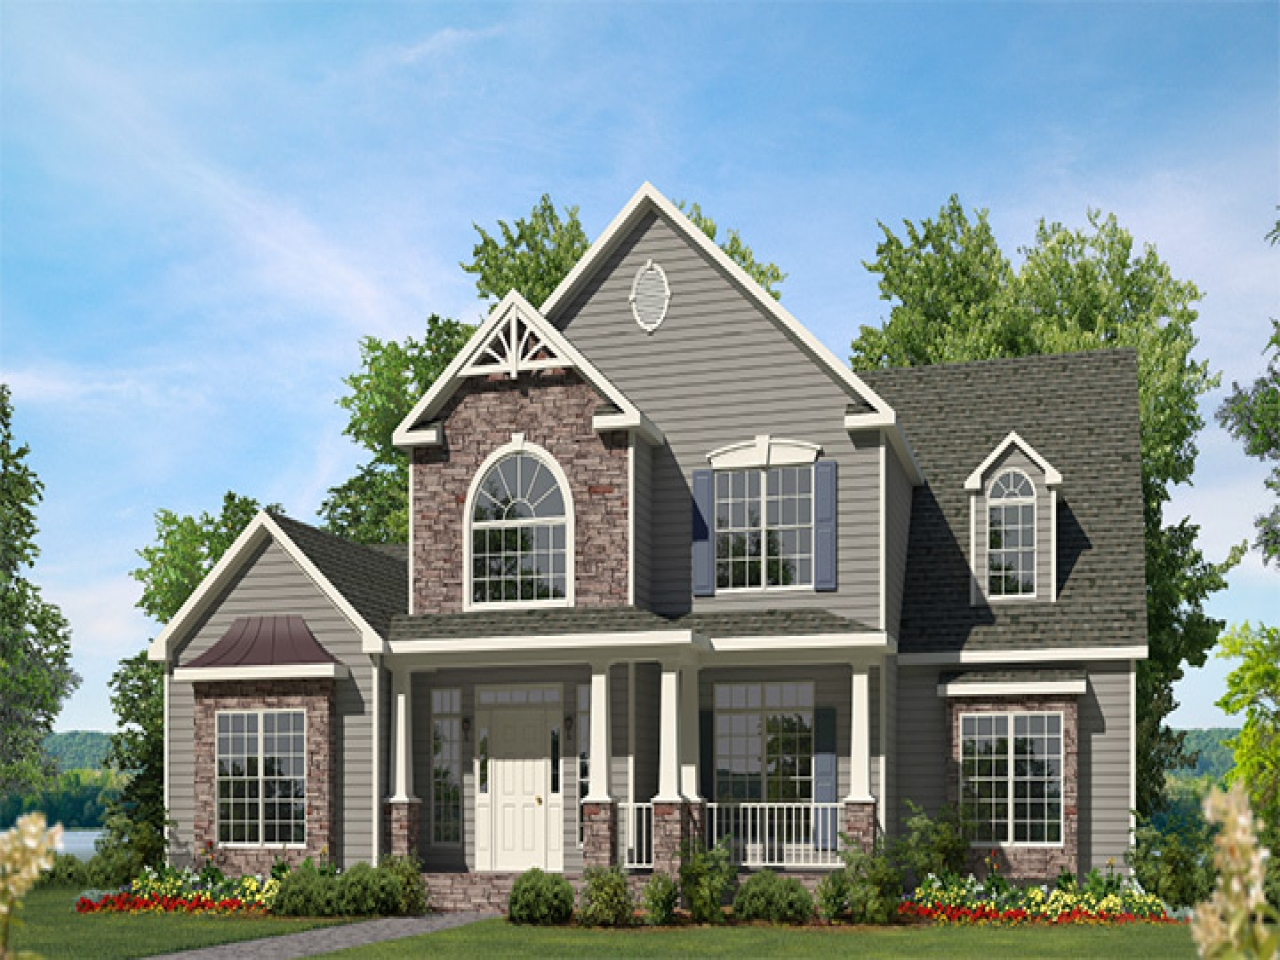 2 story modular floor plans 2 story modular homes 1 story for One story modular homes